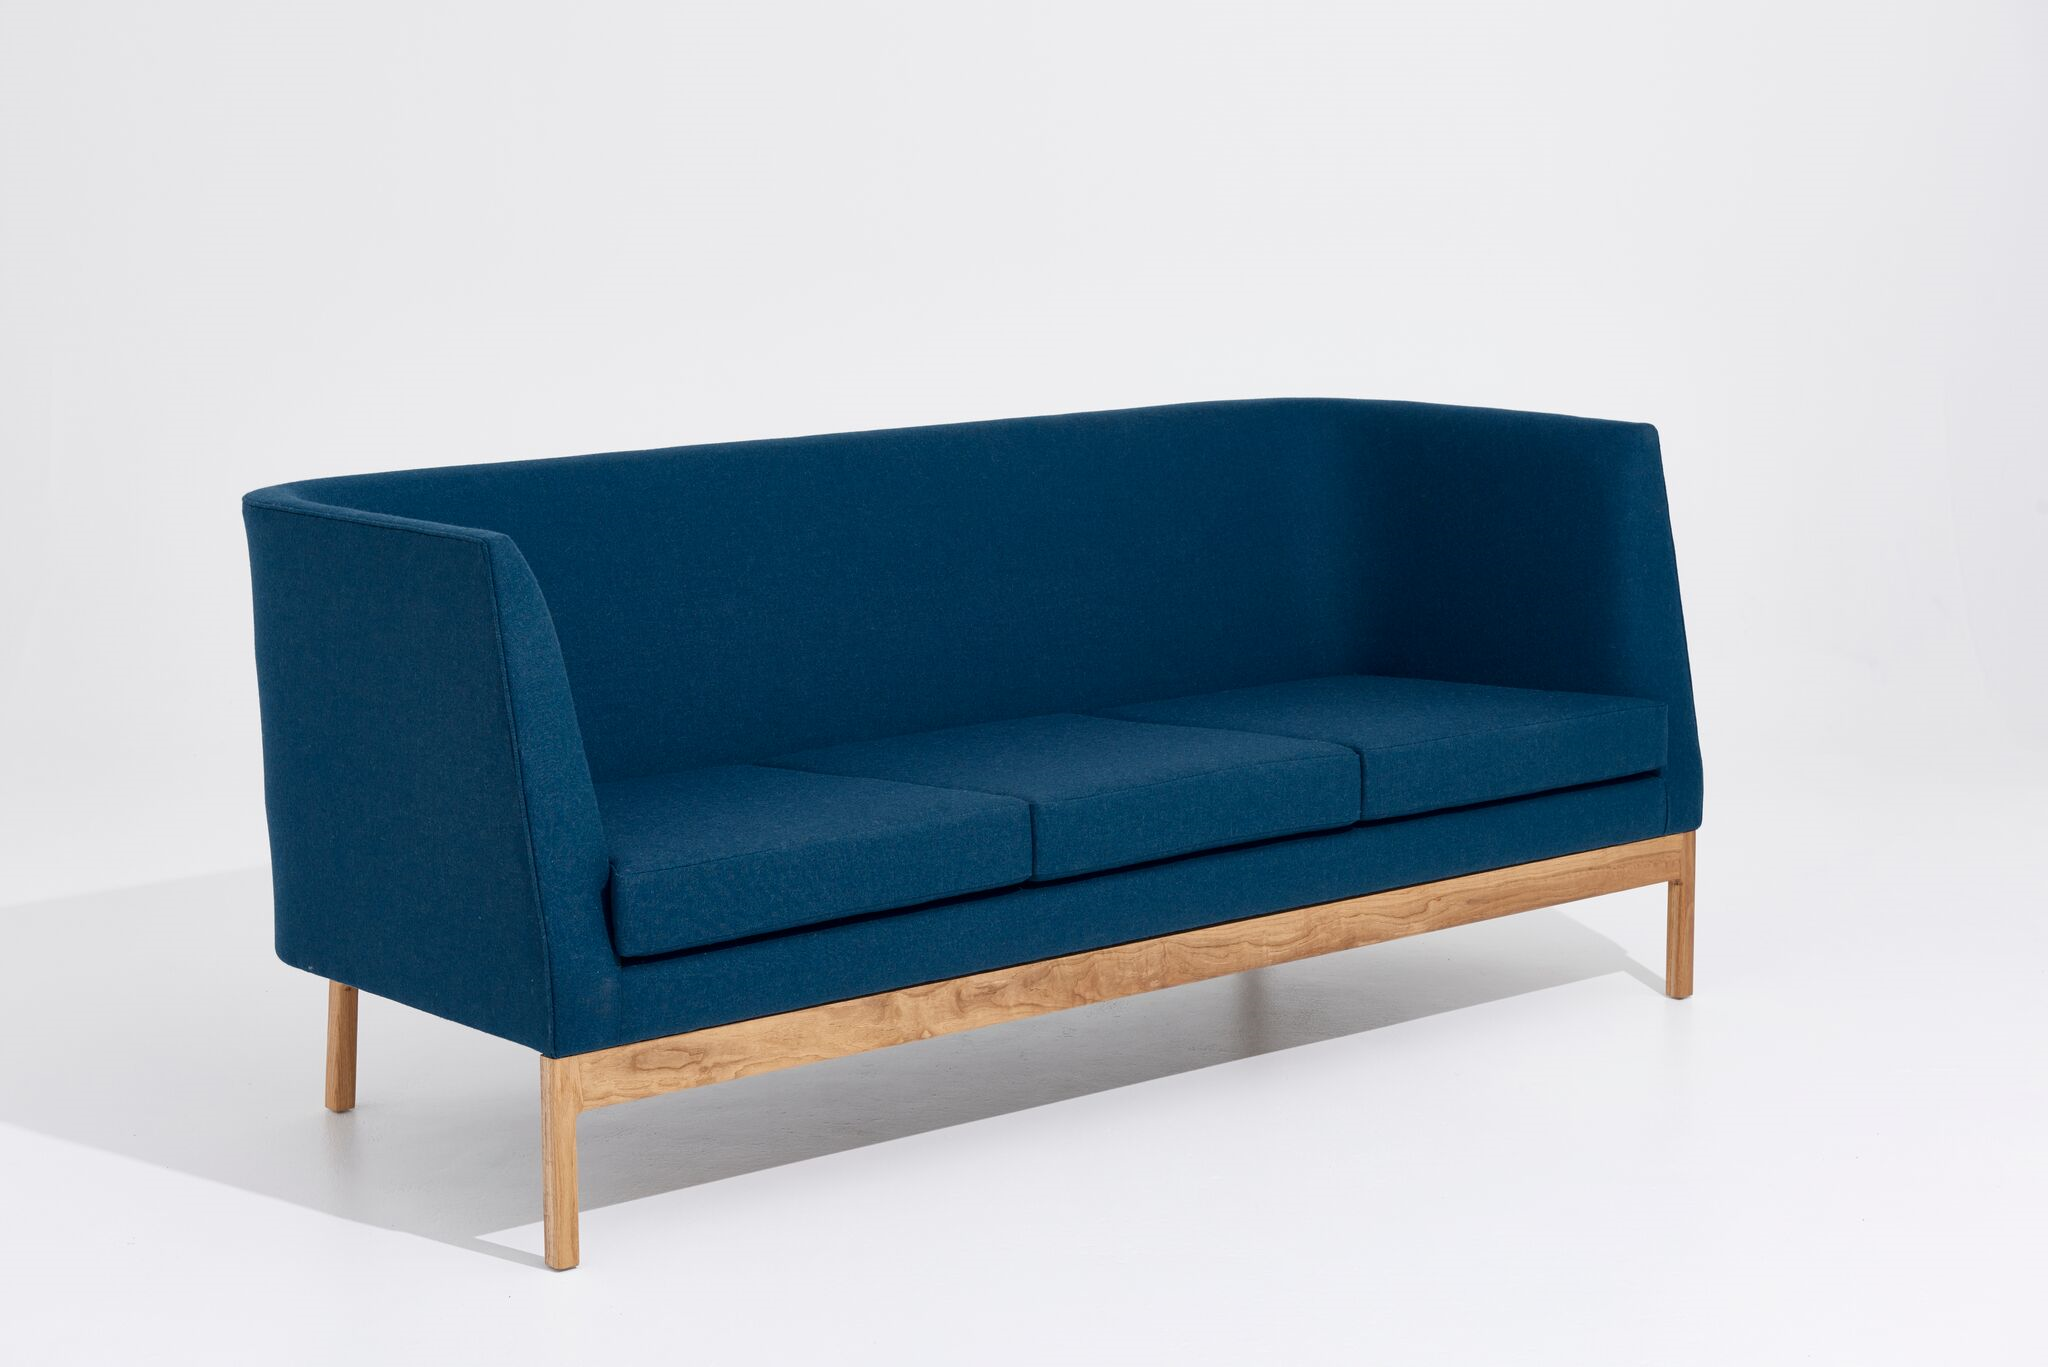 This piece is complemented perfectly by matching Heir Armchair by Apparentt.